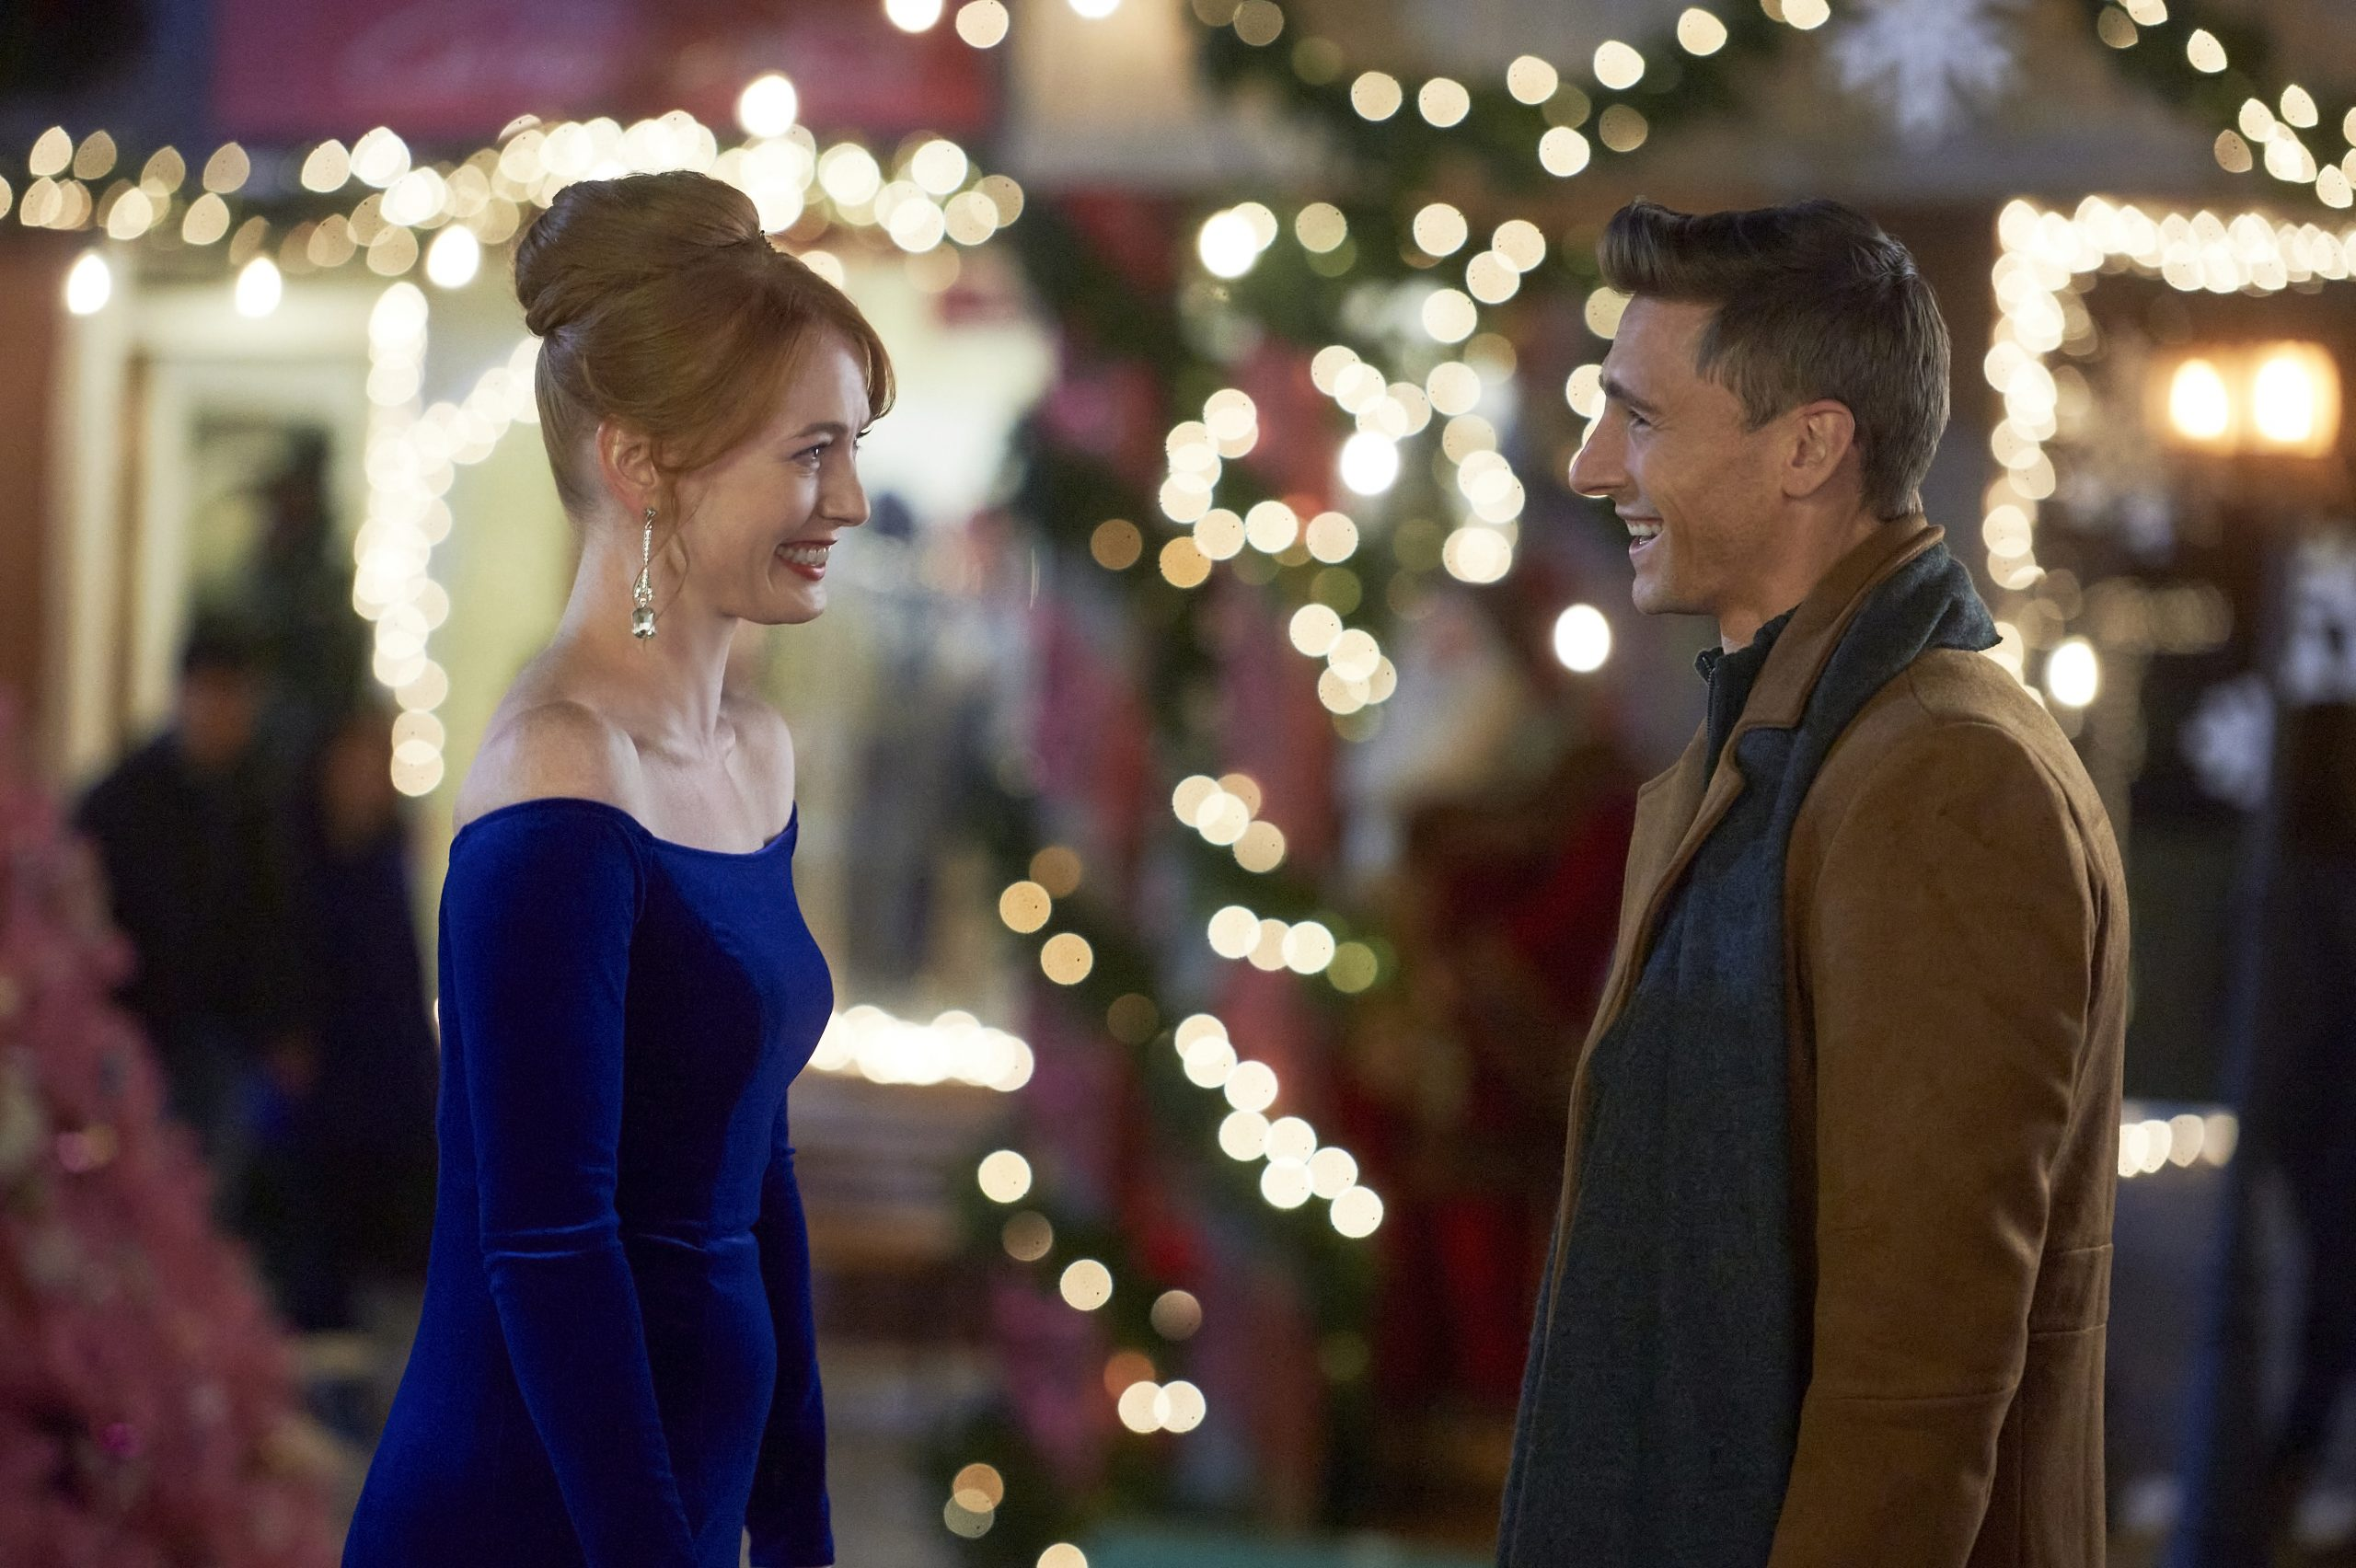 Christmas Tree Lane (2020 Hallmark Movies & Mysteries) – Lifetime